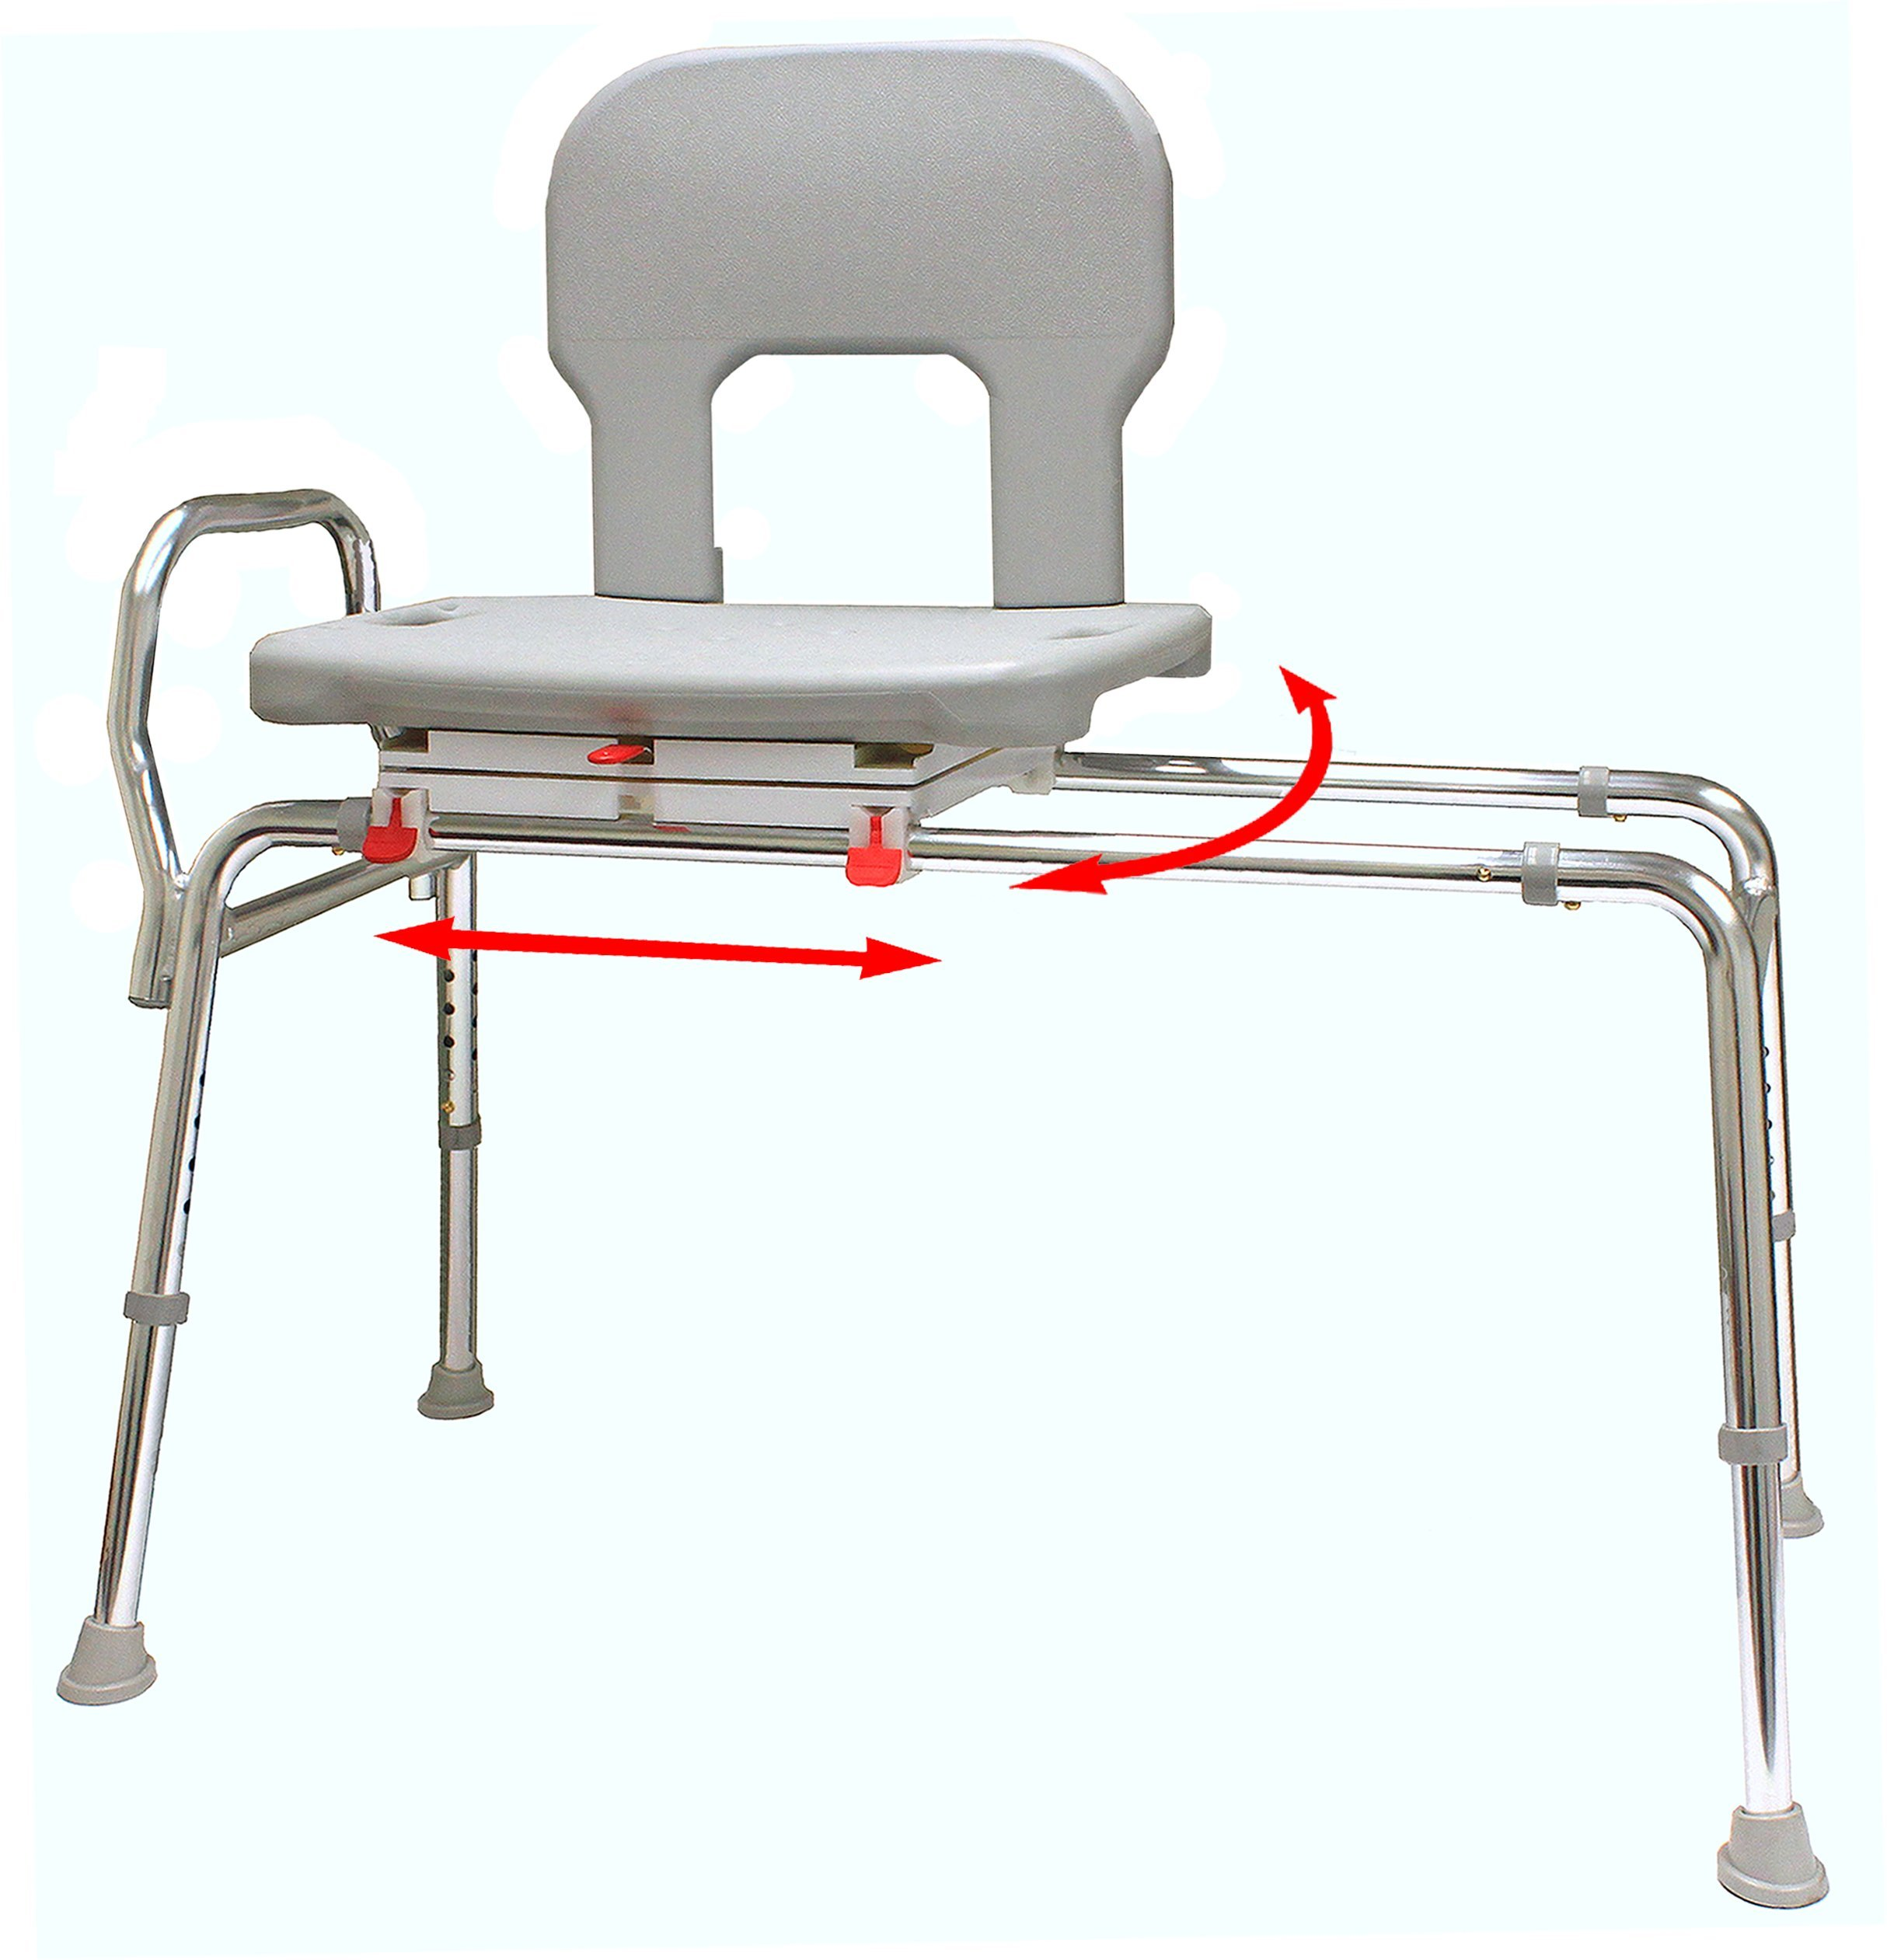 Tall Bariatric Swivel Sliding Bath Transfer Bench (56662) - Regular (Base Length: 39.5'' - 40.5'') - Heavy-Duty Shower Bathtub Chair - Eagle Health Supplies